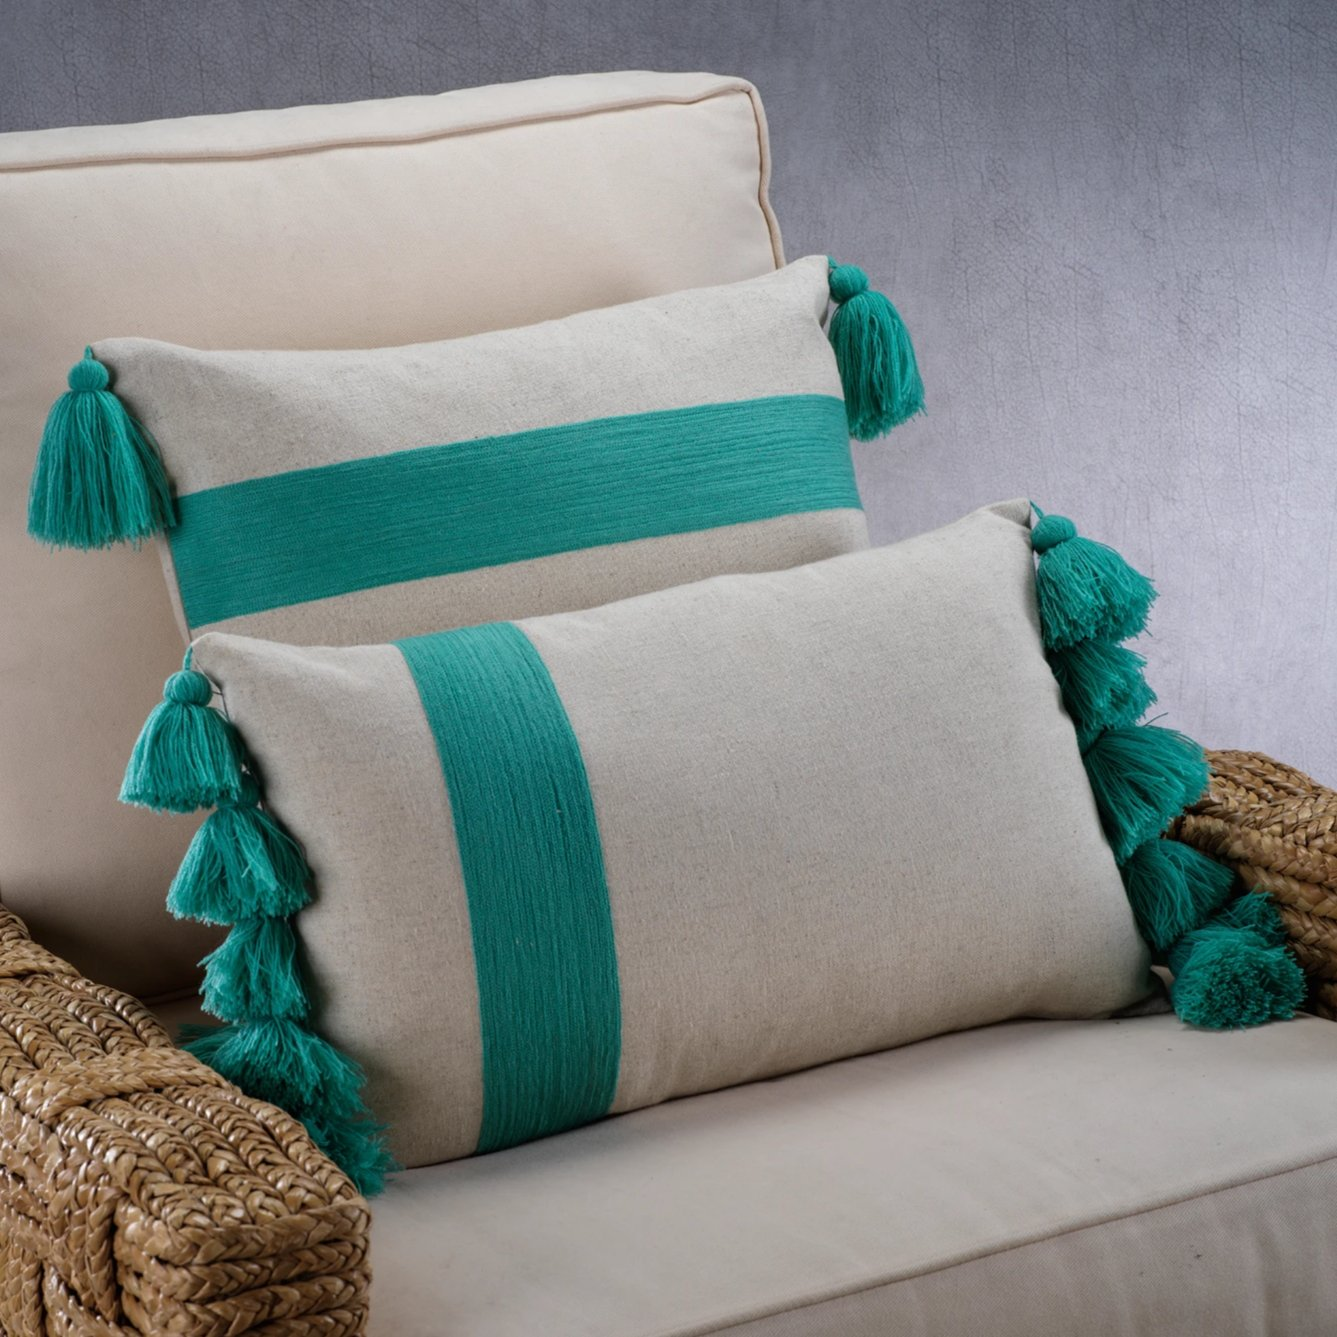 Polignano Embroidered Throw Pillow w/Tassels - Turquoise